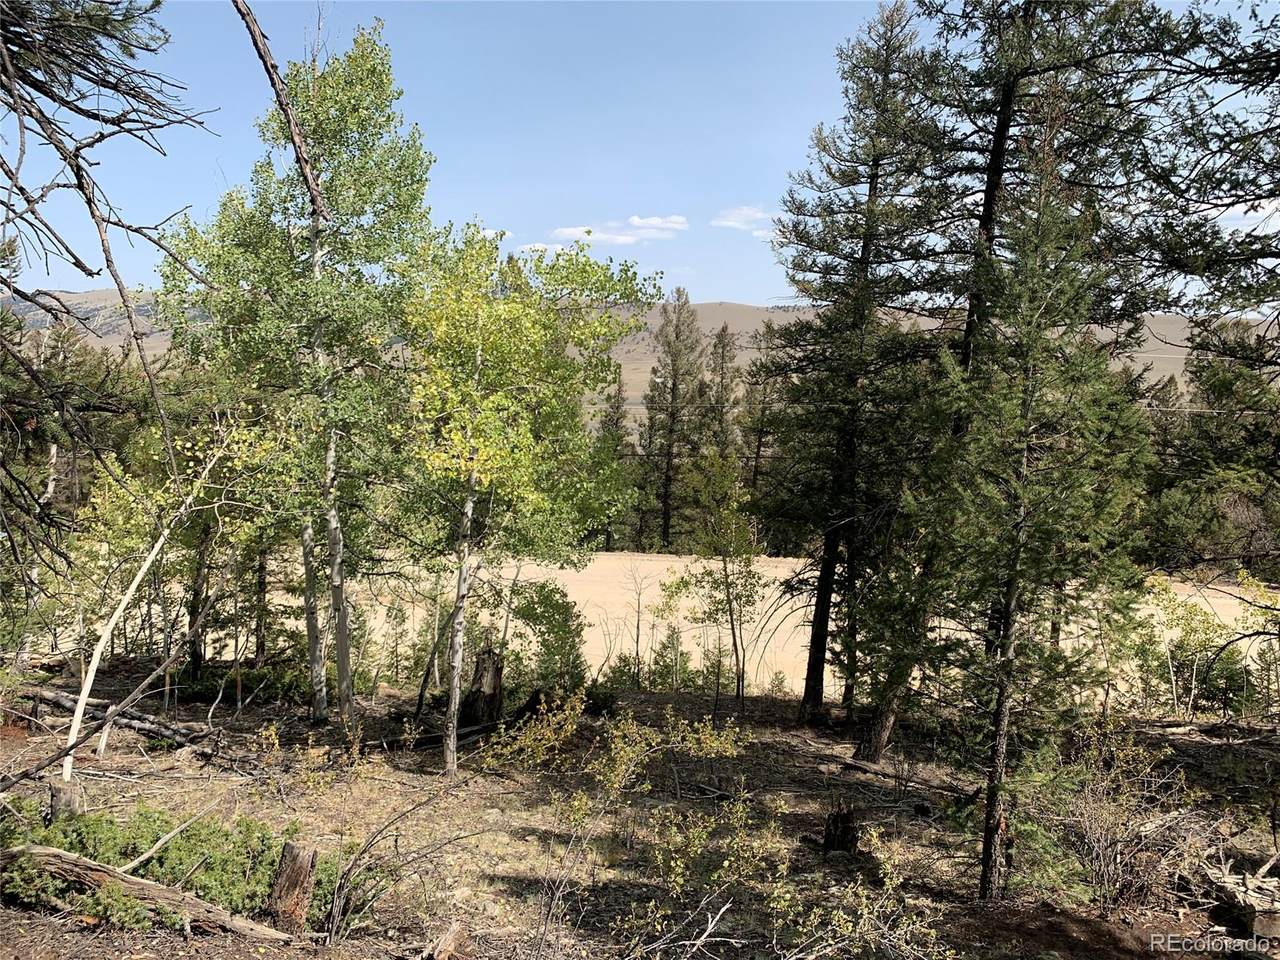 000 Redhill Rd/Middle Fork Vista - Photo 1